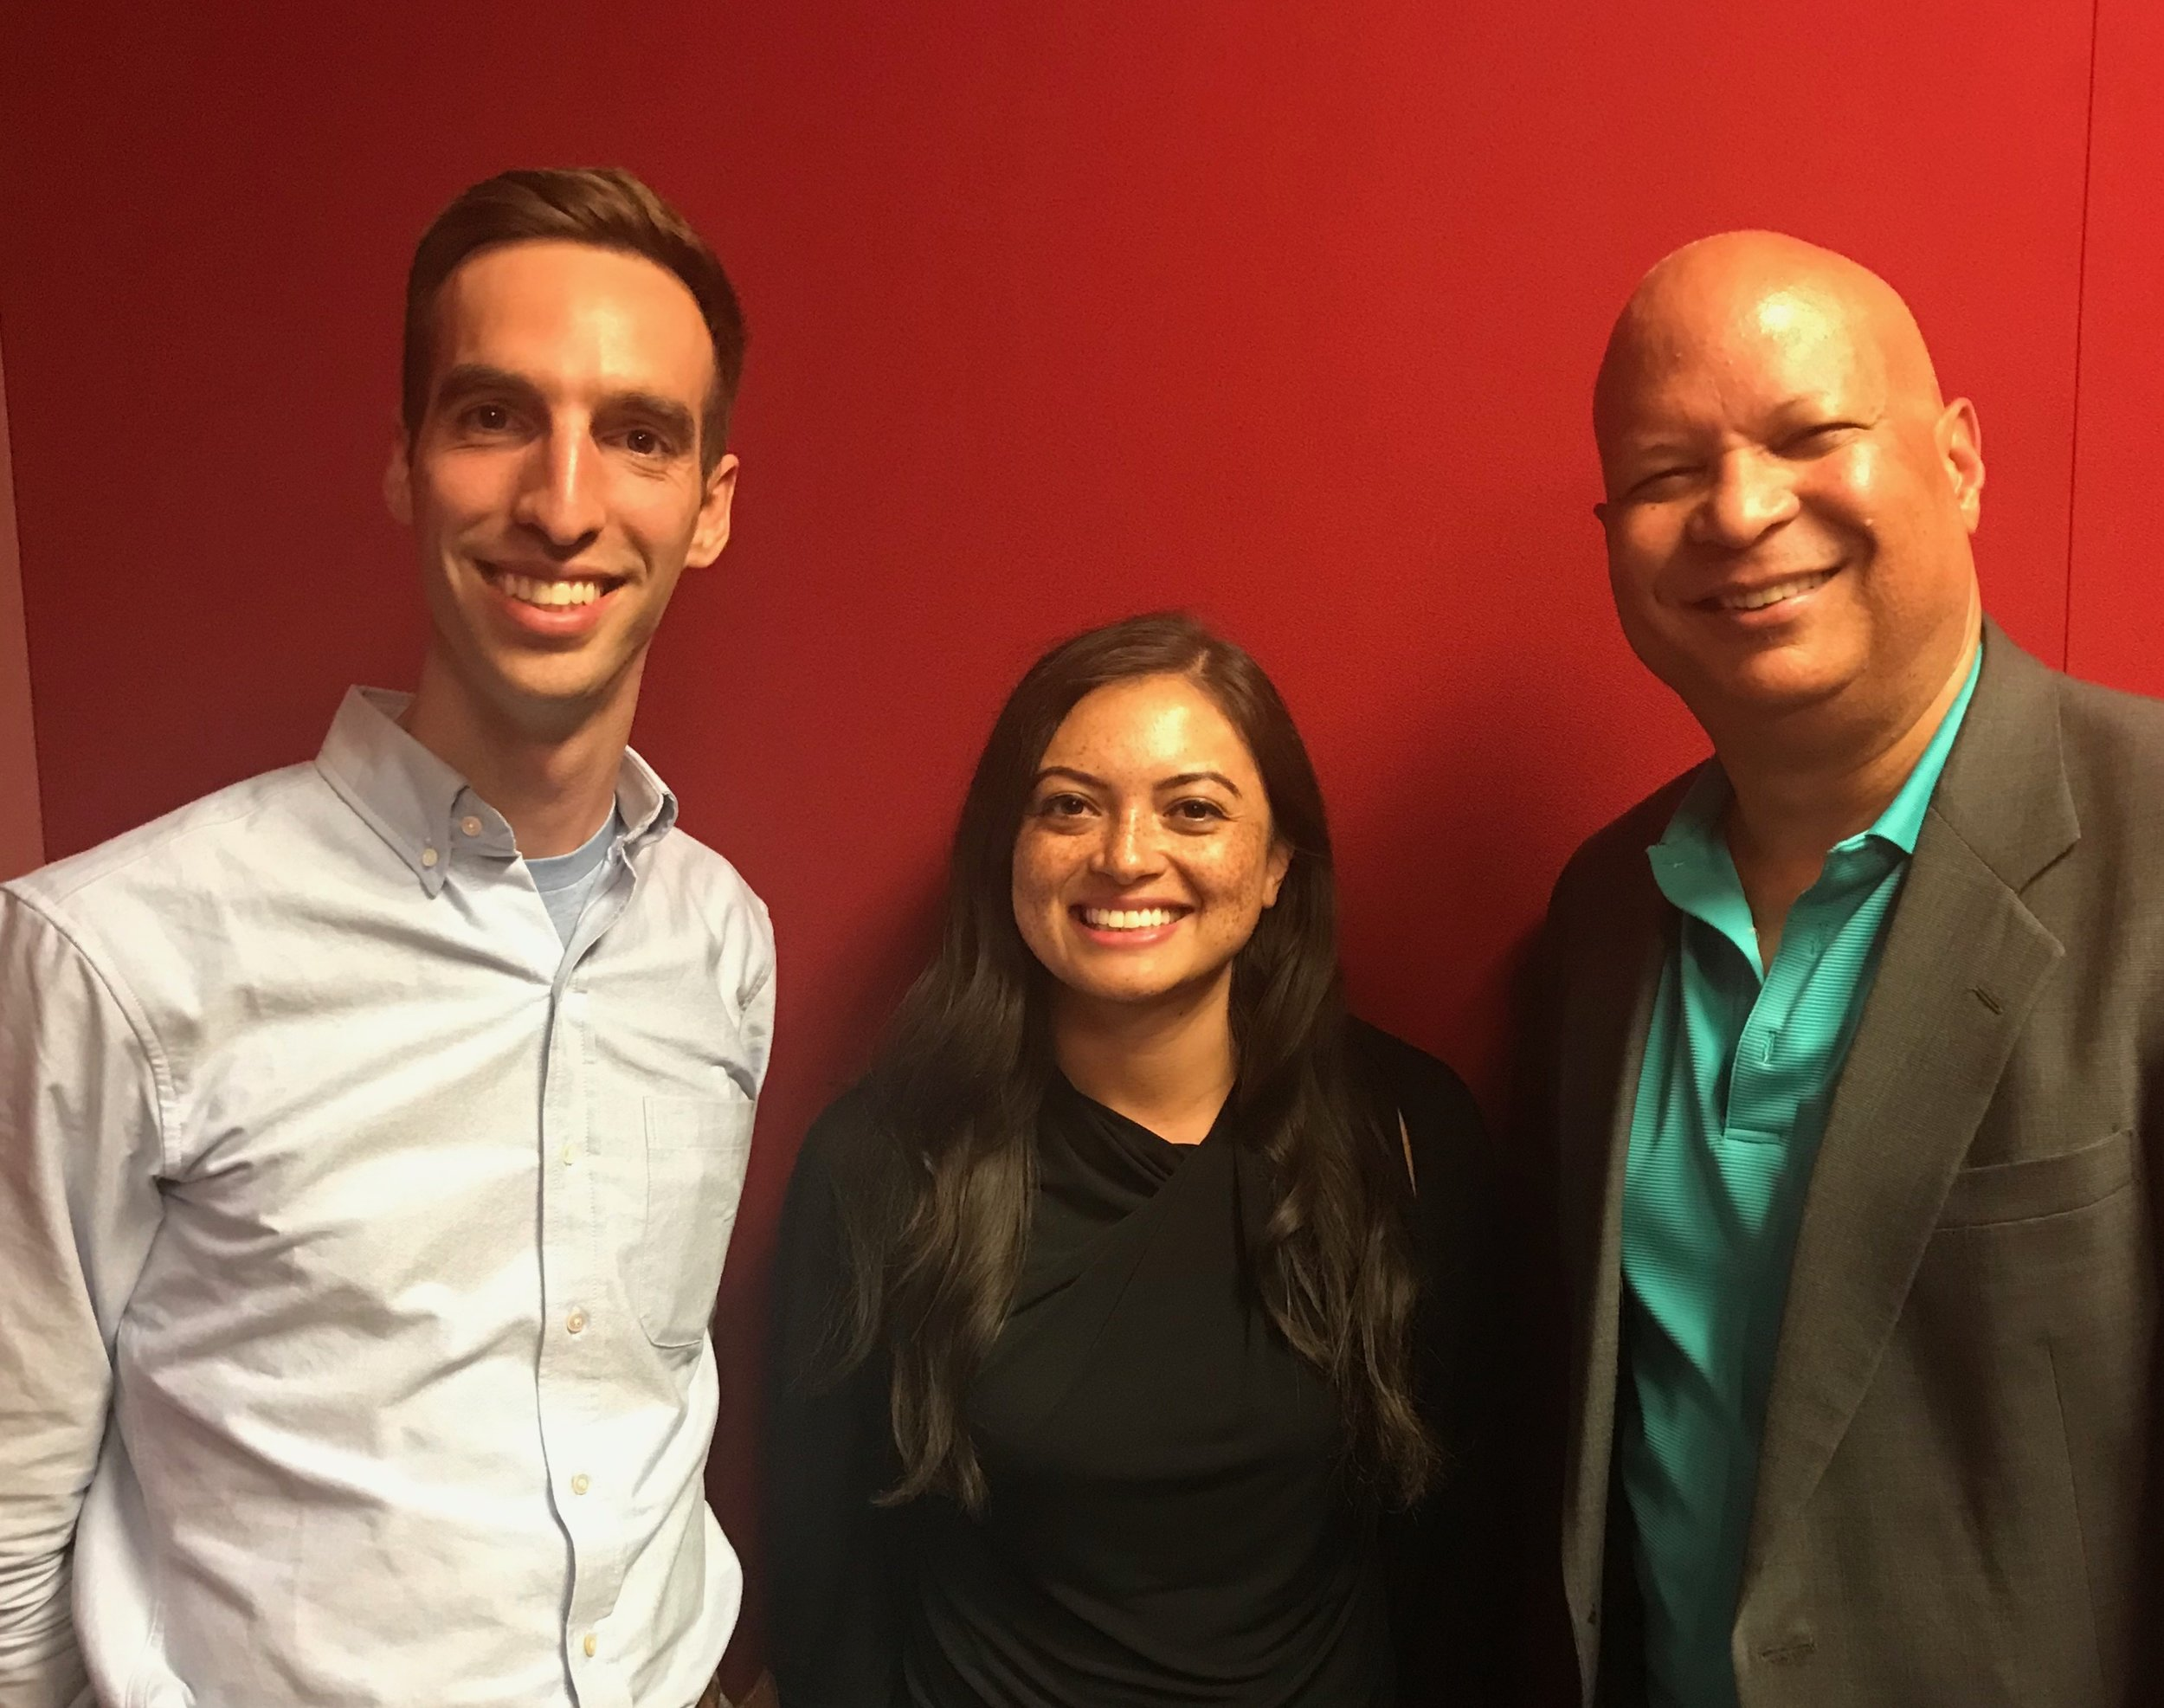 2019.08.10 Paul Thomas MD Raquel Orlich DO and Mark S Lee on Small Talk Radio Detroit.jpeg